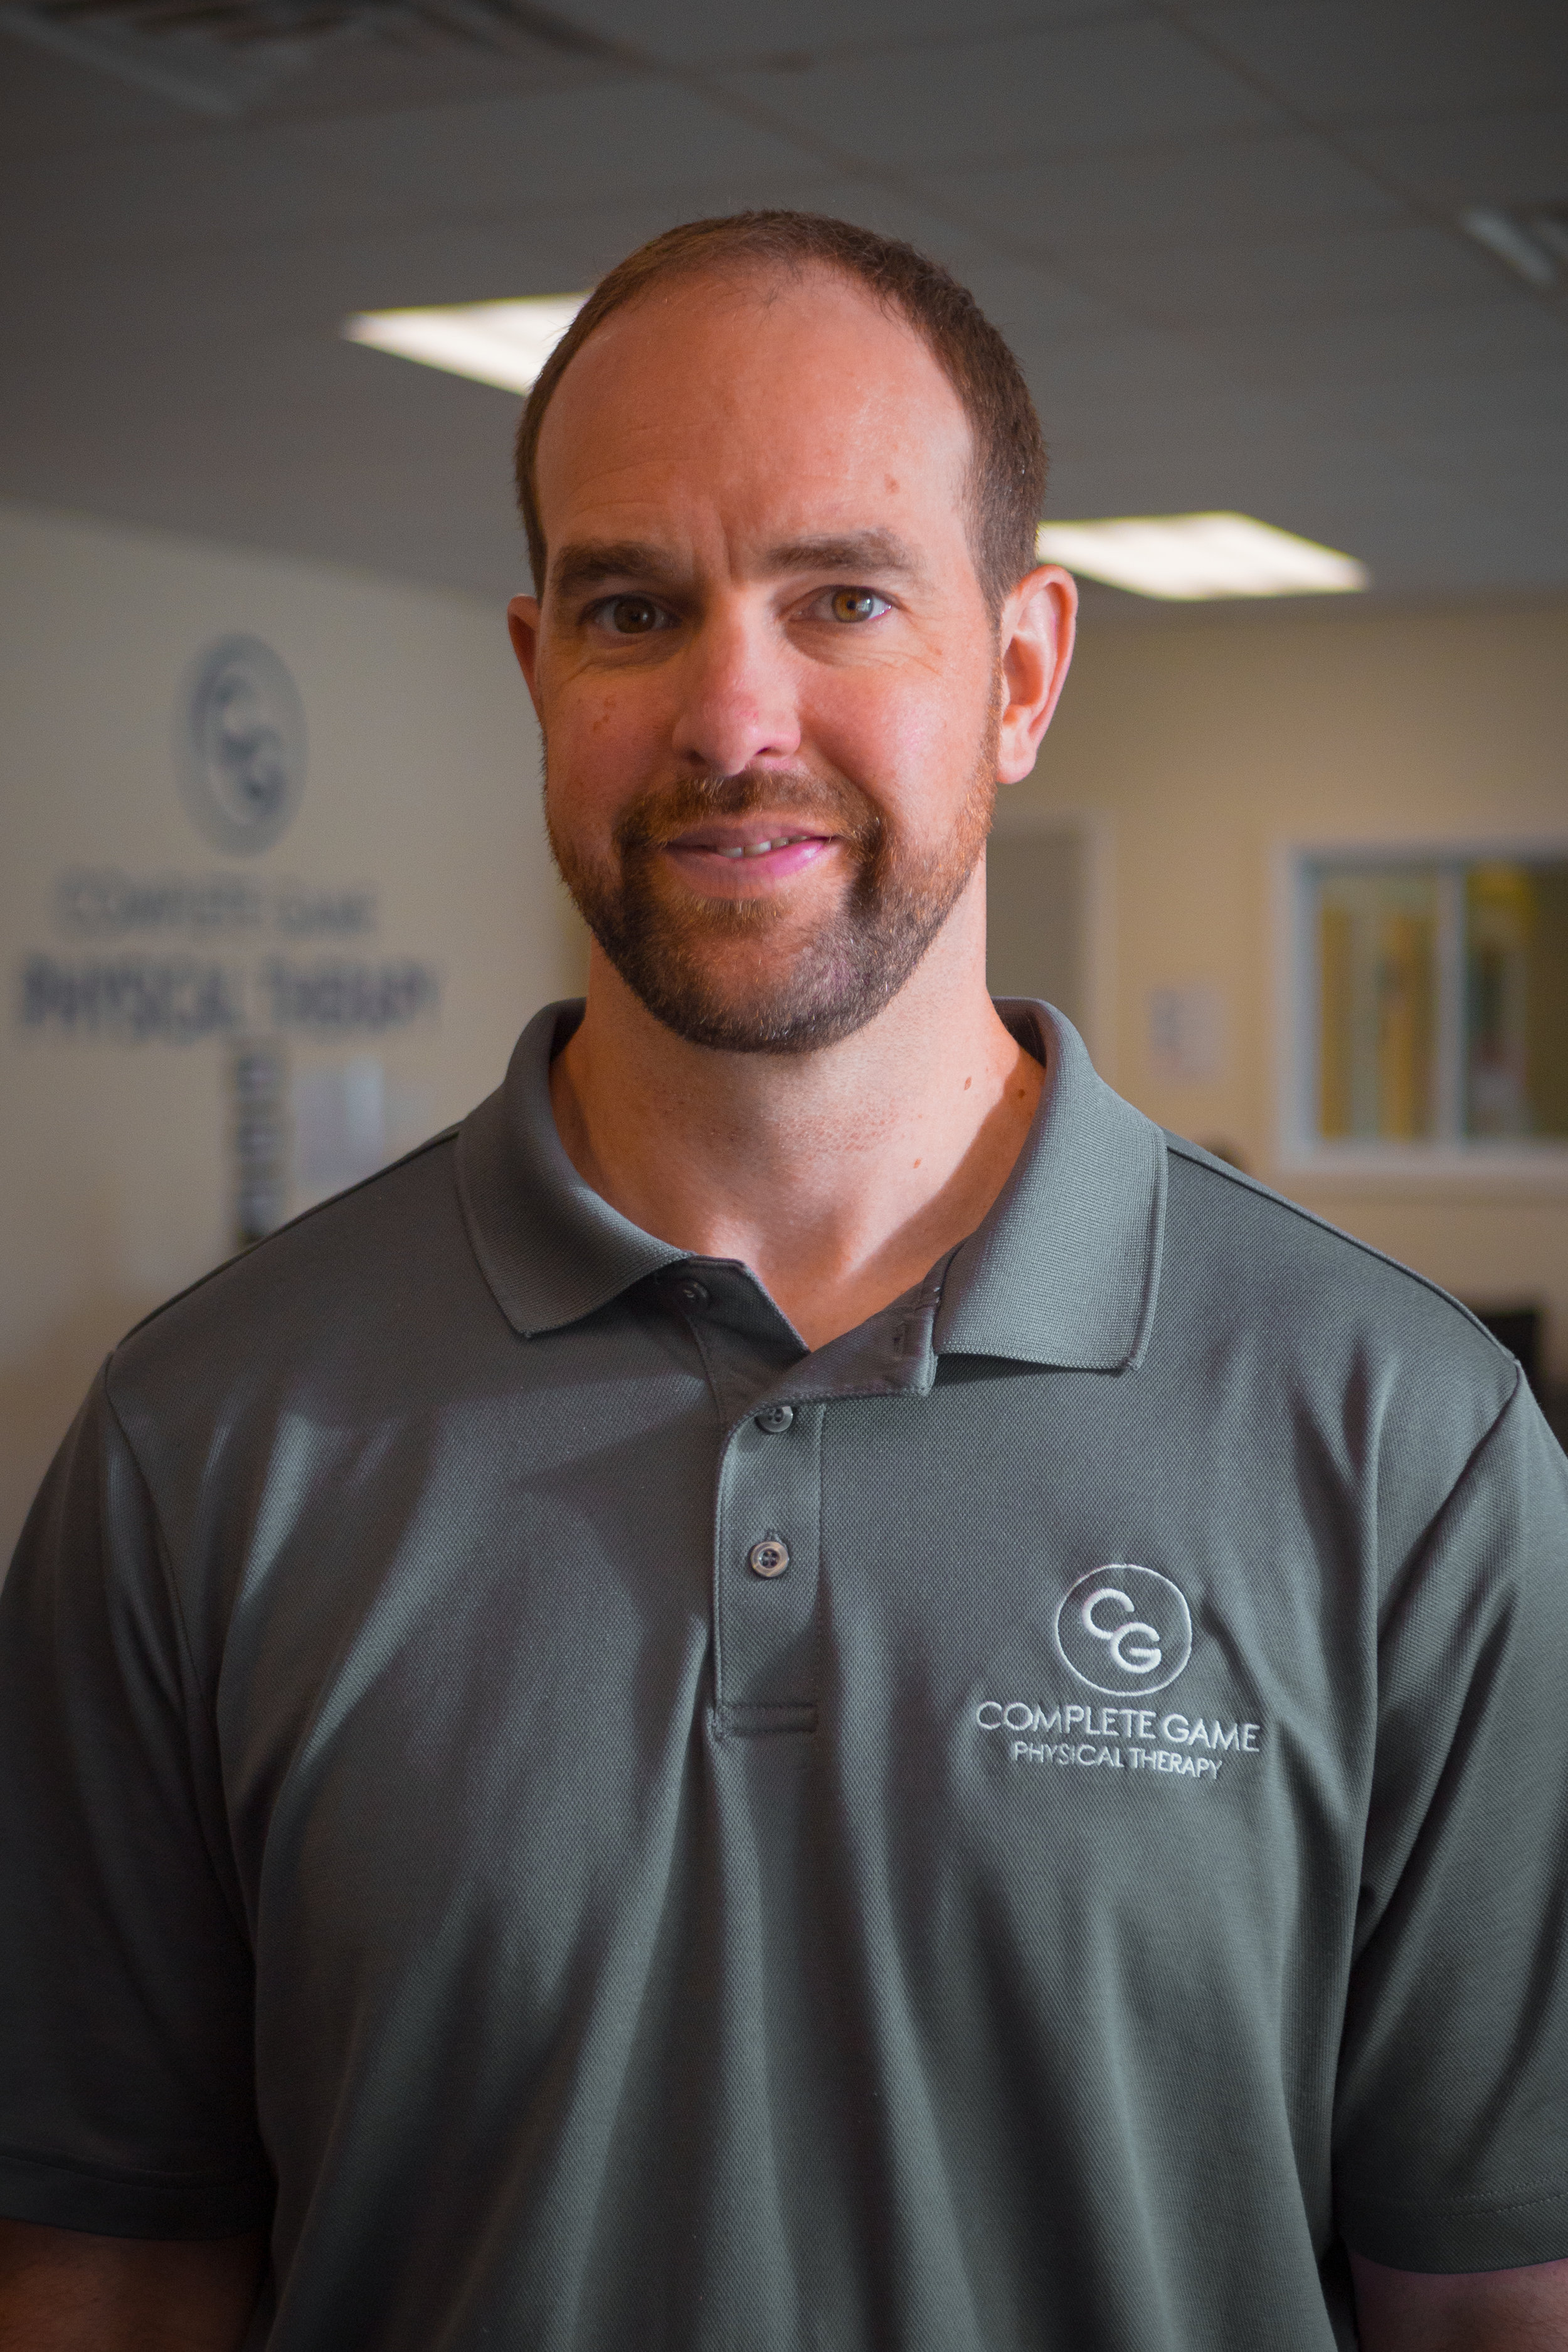 Greg Crossman, owner of Complete Game Physical Therapy in Lowell Massachusetts